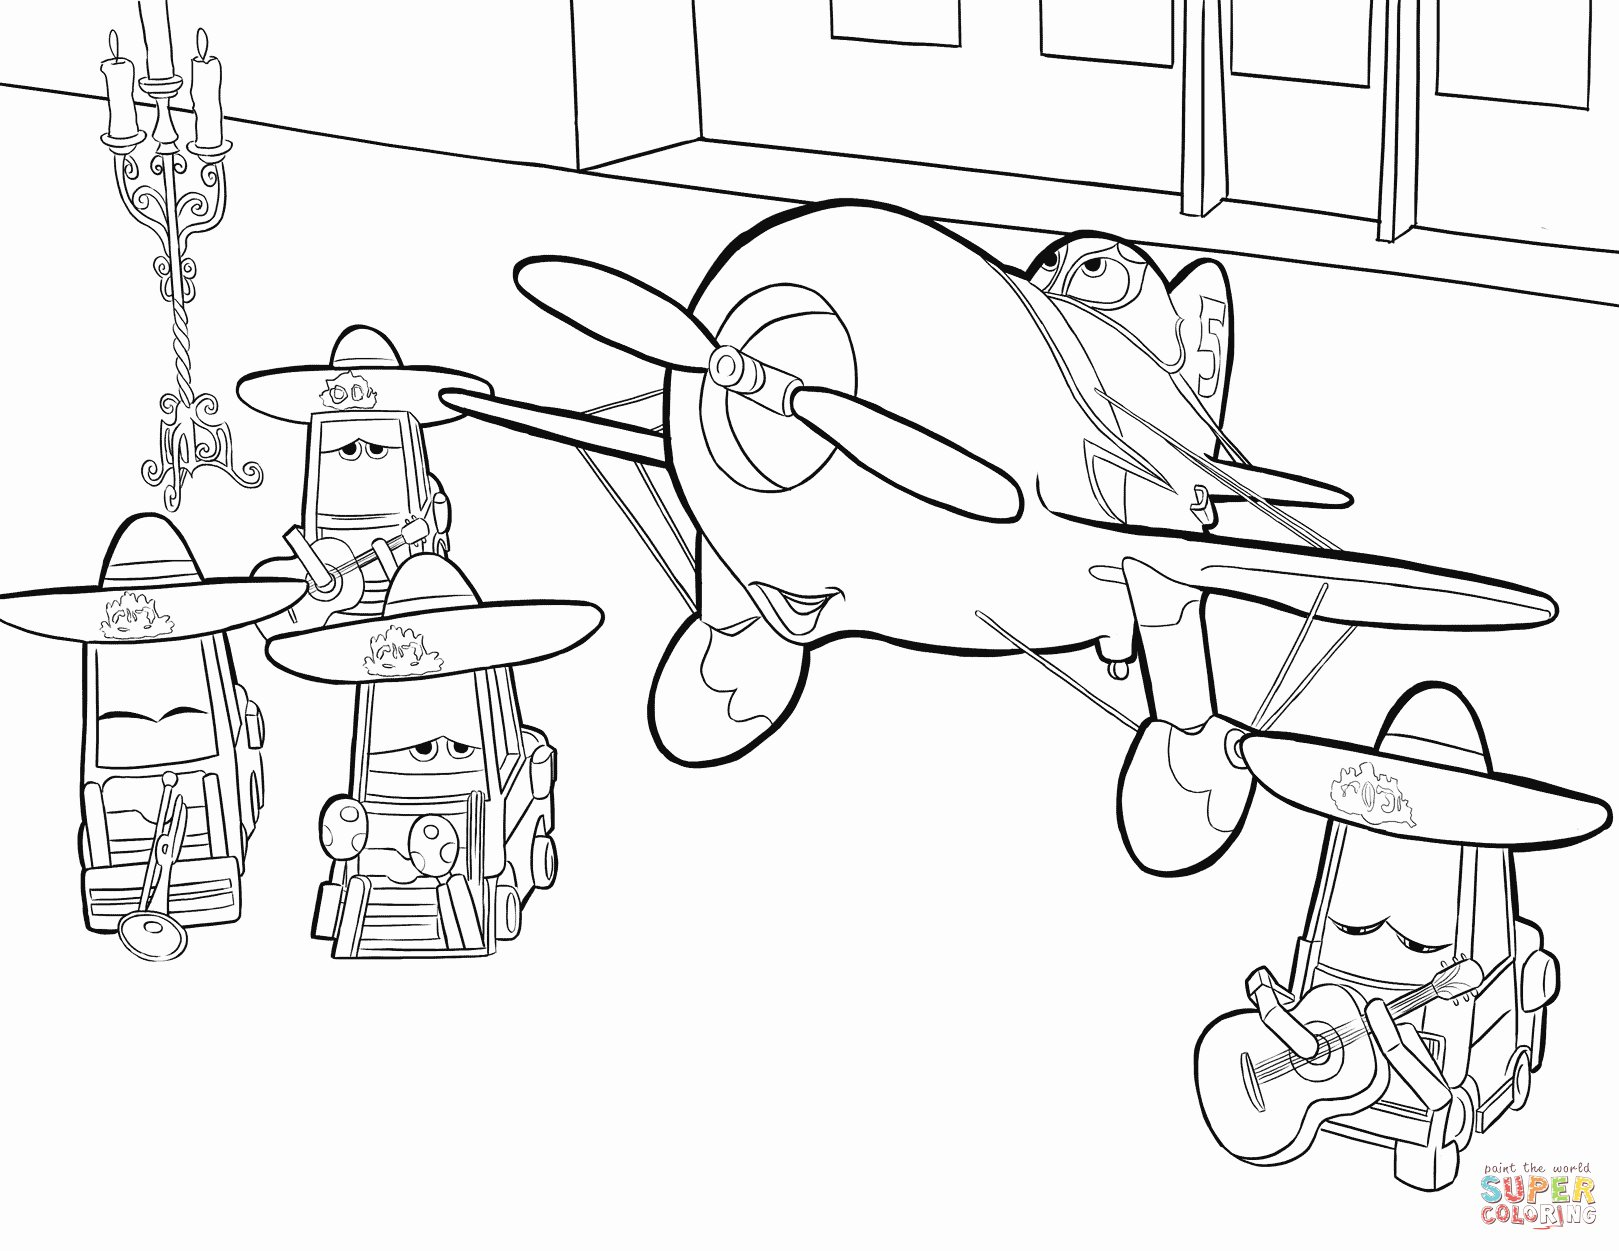 1619x1251 Shadrach Meshach And Abednego Coloring Page Lovely Quickly Pixar